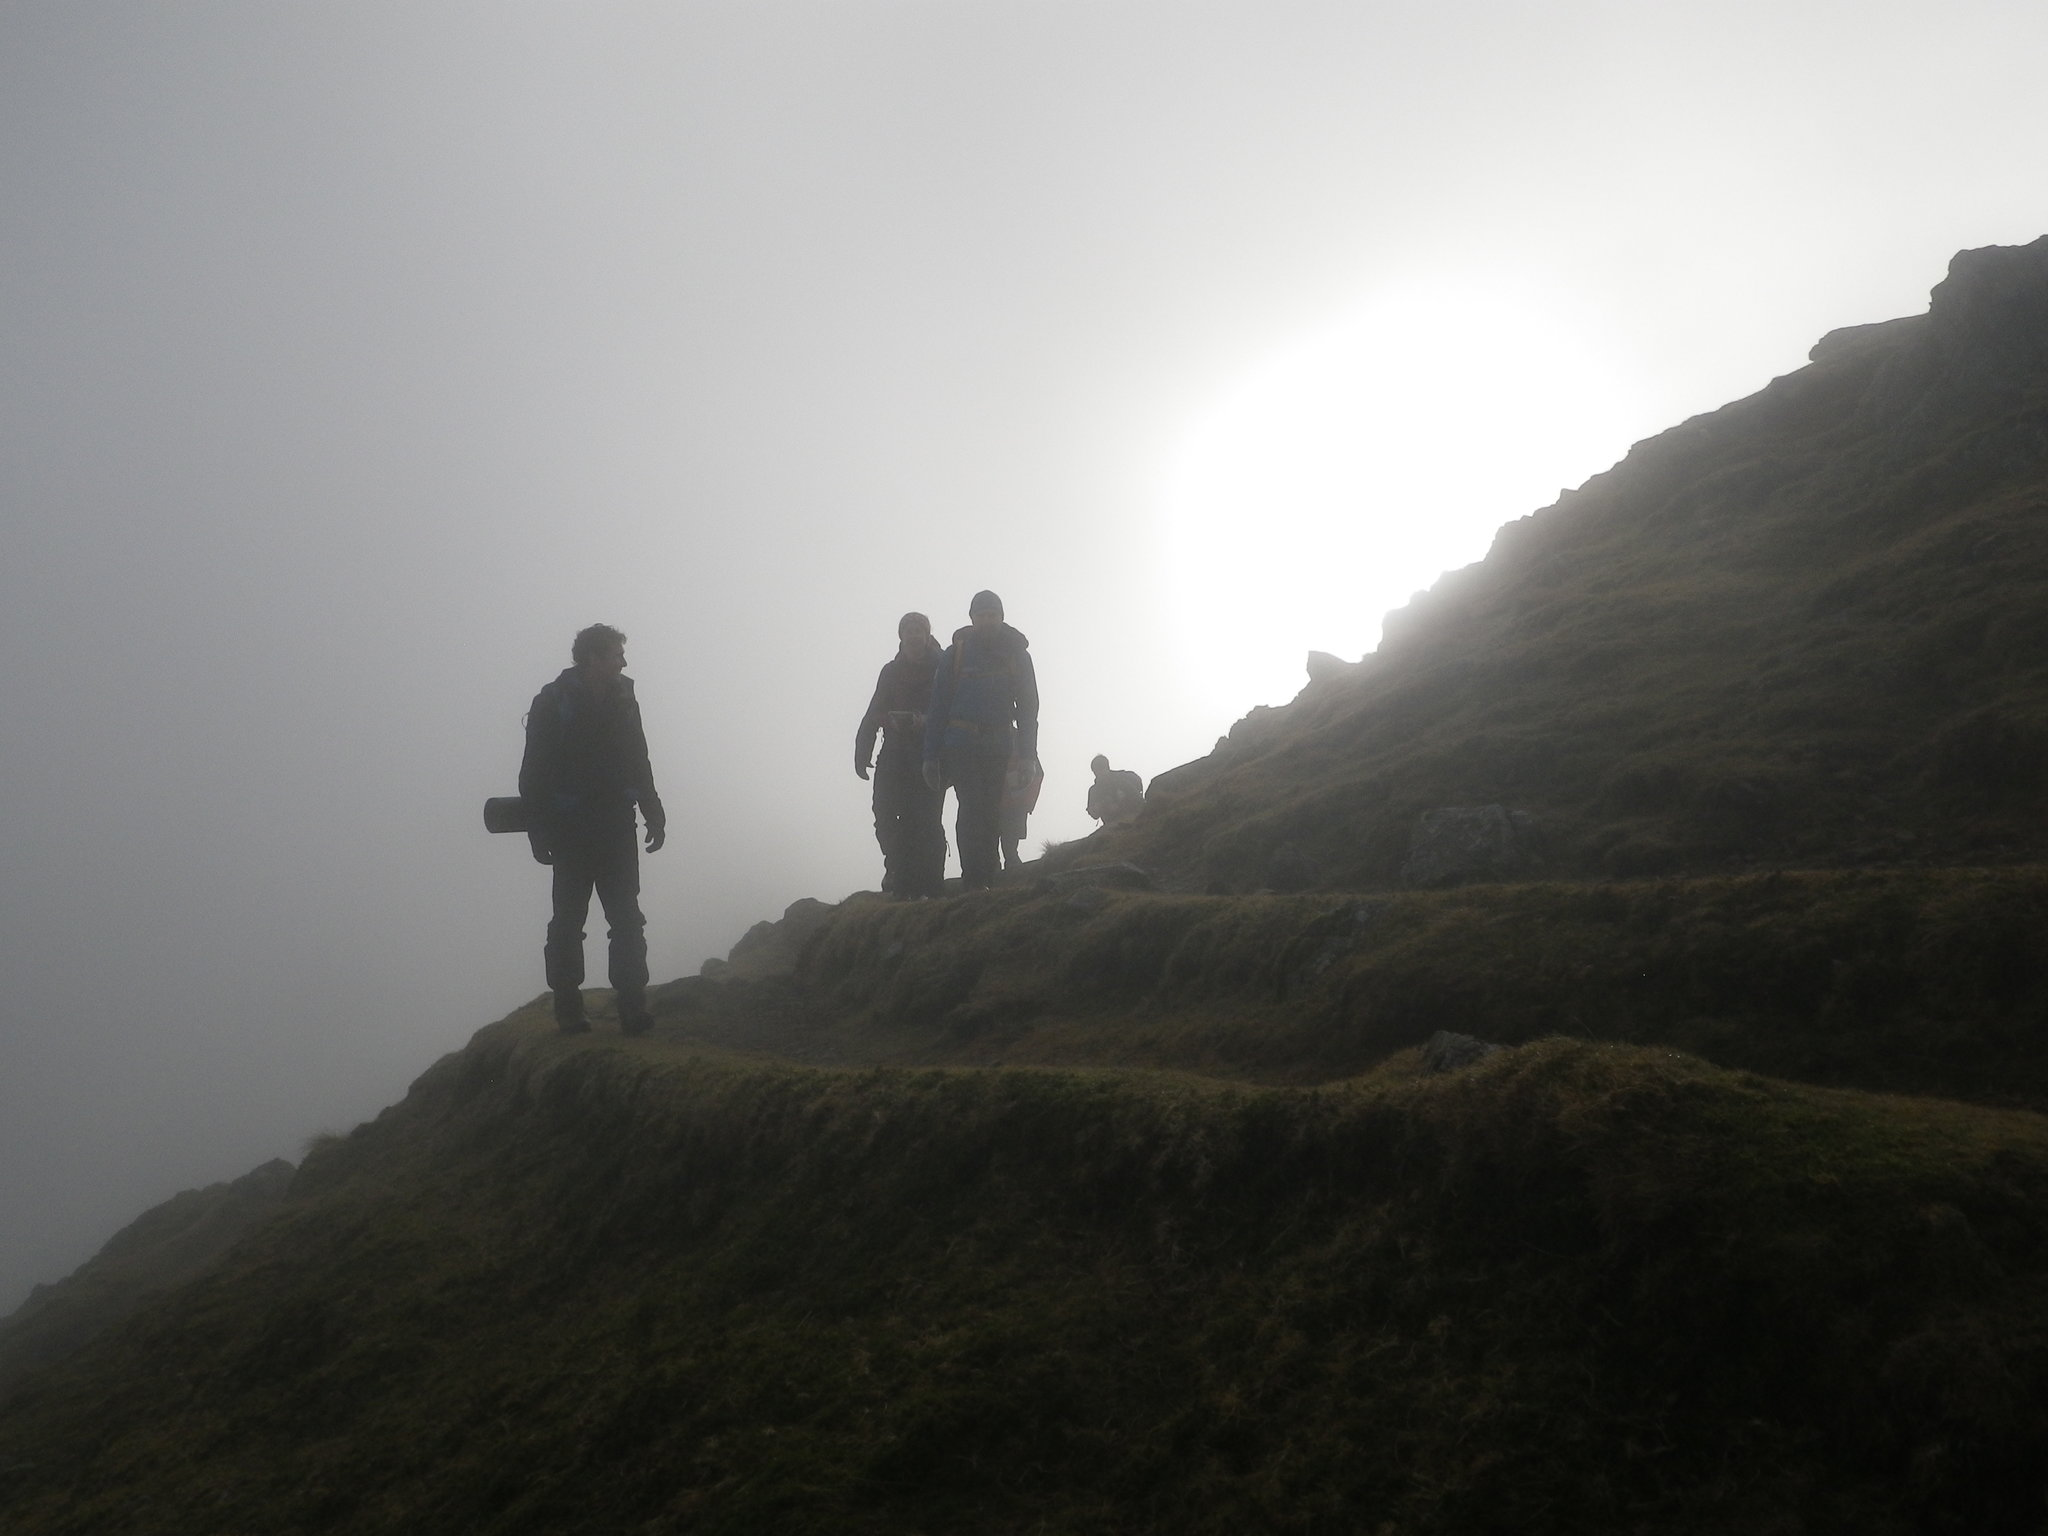 Out on expo on the Mountain Leader training course last week